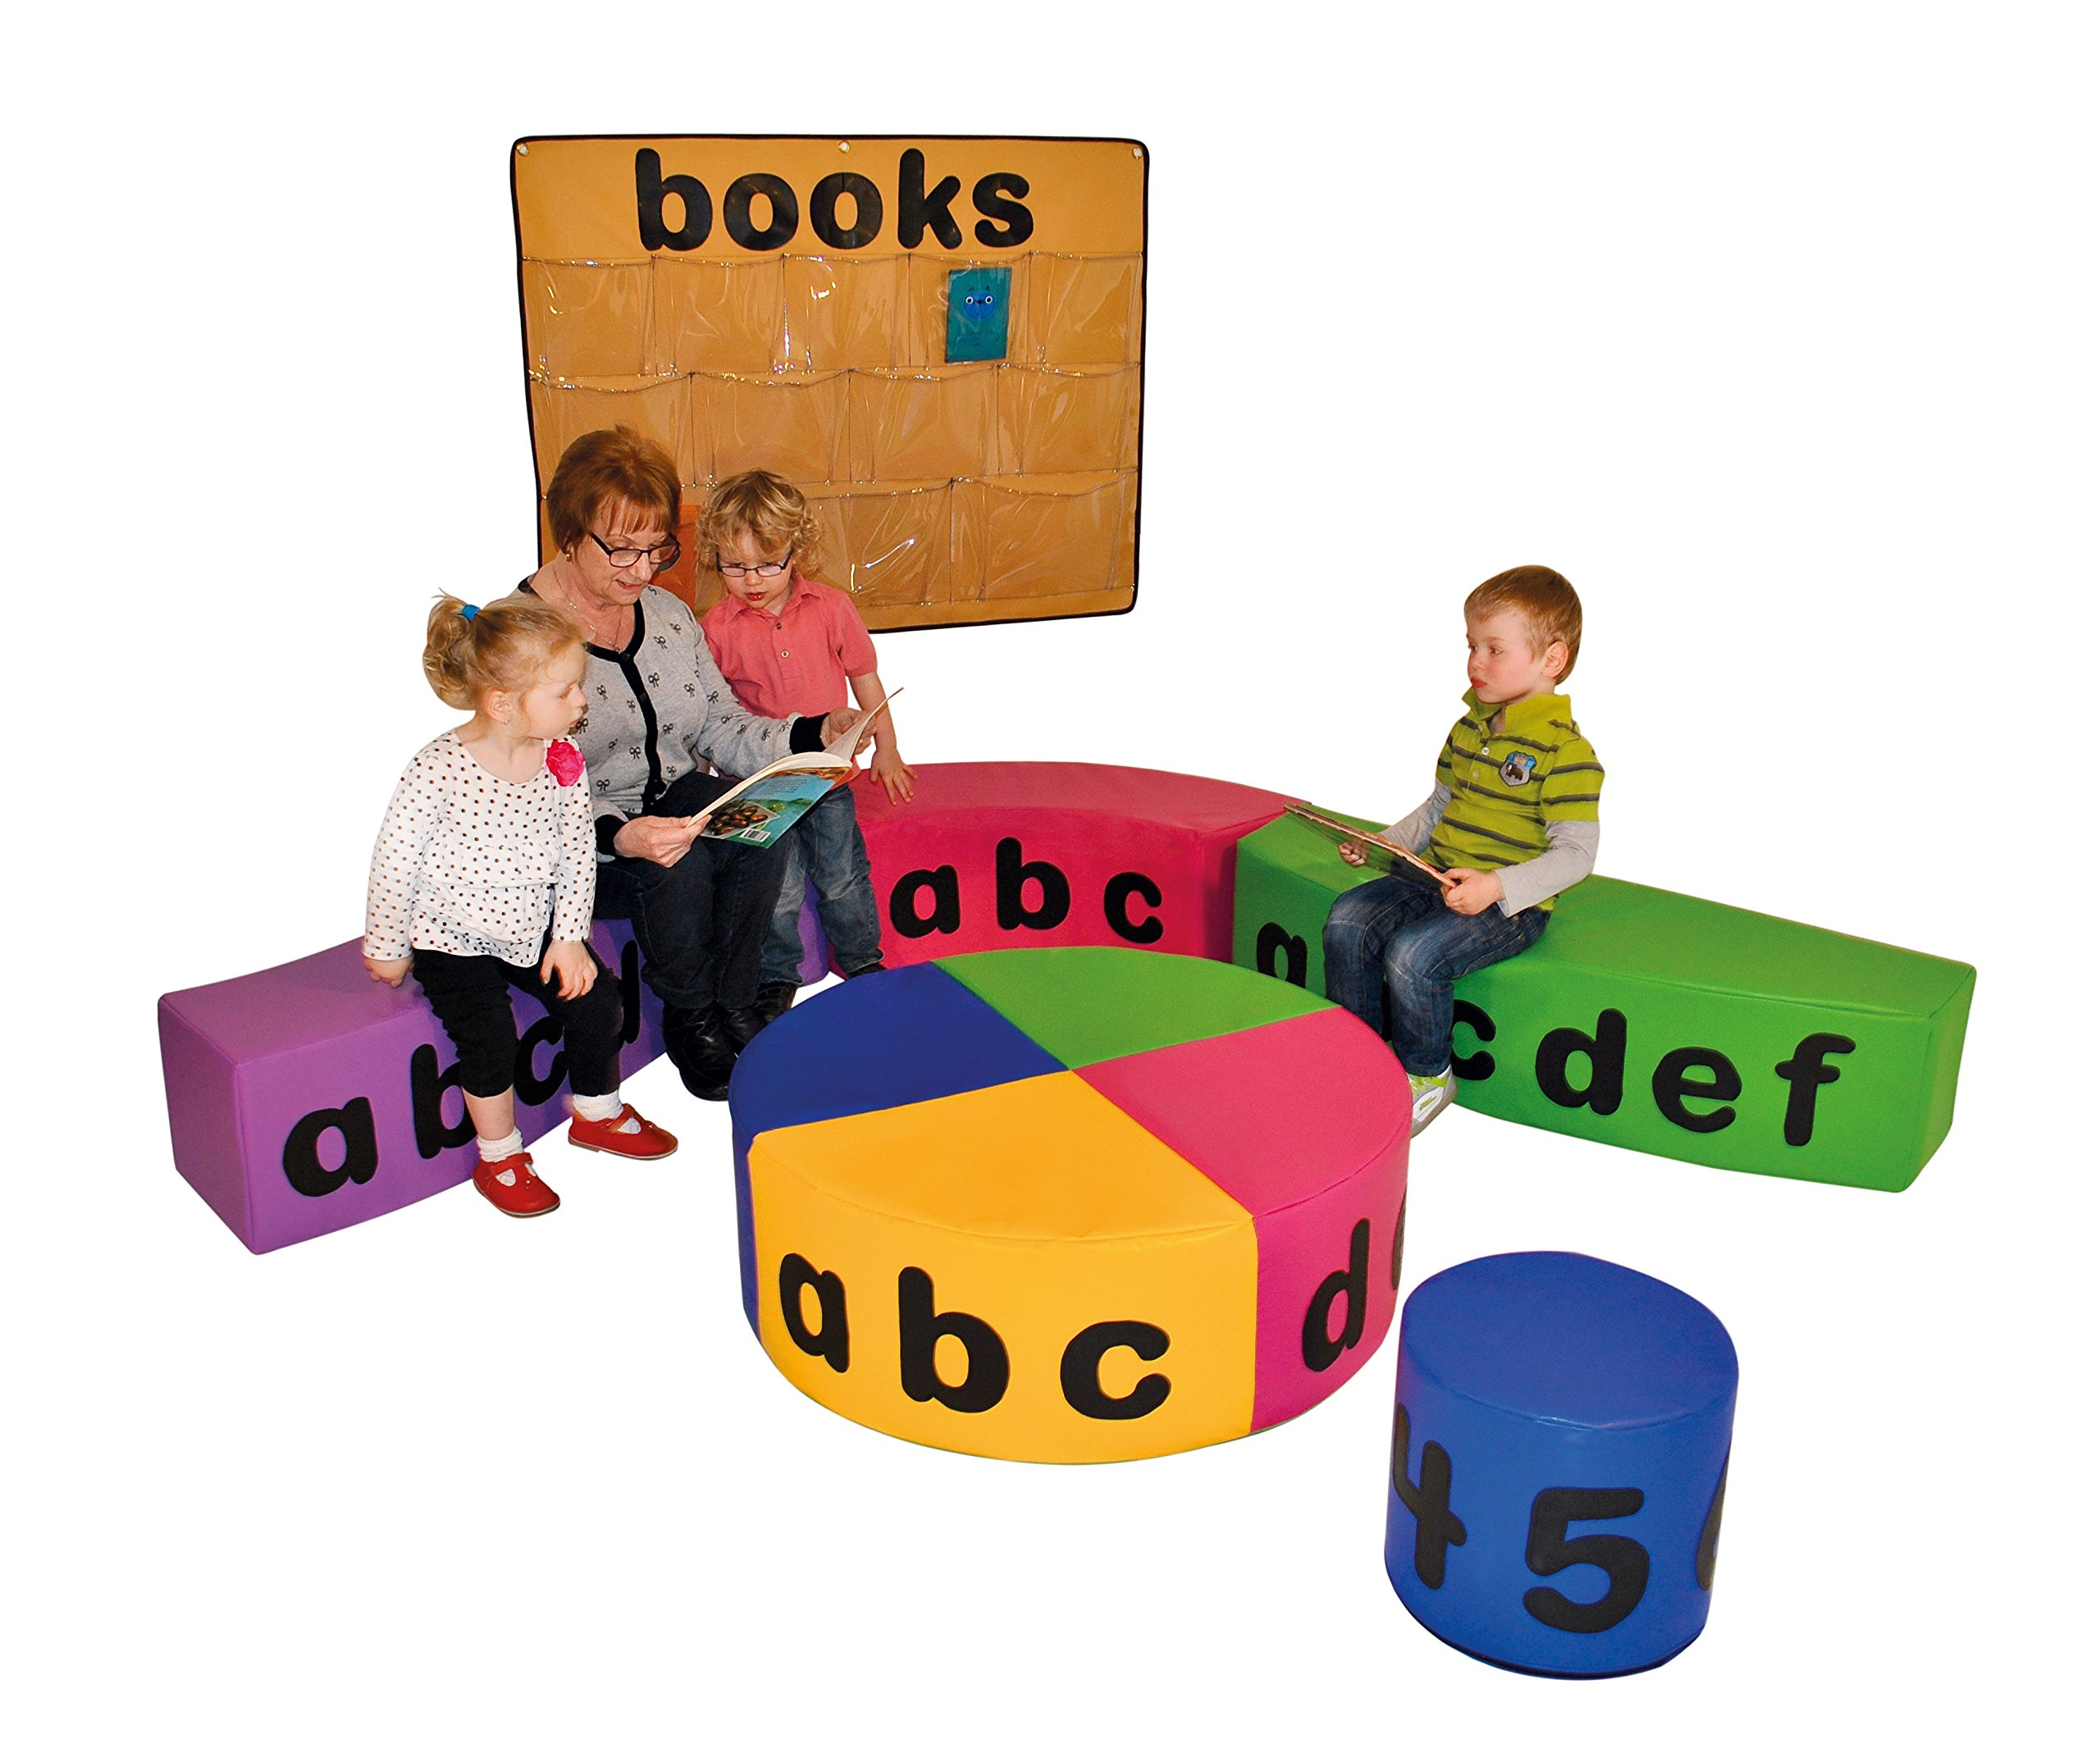 NURSERY READING CORNER with NUMBERS and LETTERS (Large Set) Child Evolution Our reading furnitures are designed for pre-school and early primary aged children. The soft foam pieces have letters and numbers on to encourage recognition and a fun approach to learning. Available in two standard sets. Although we can also supply different configurations as well as individual pieces 2 years manufacturing warranty. Delivery in 3-5 working days 1